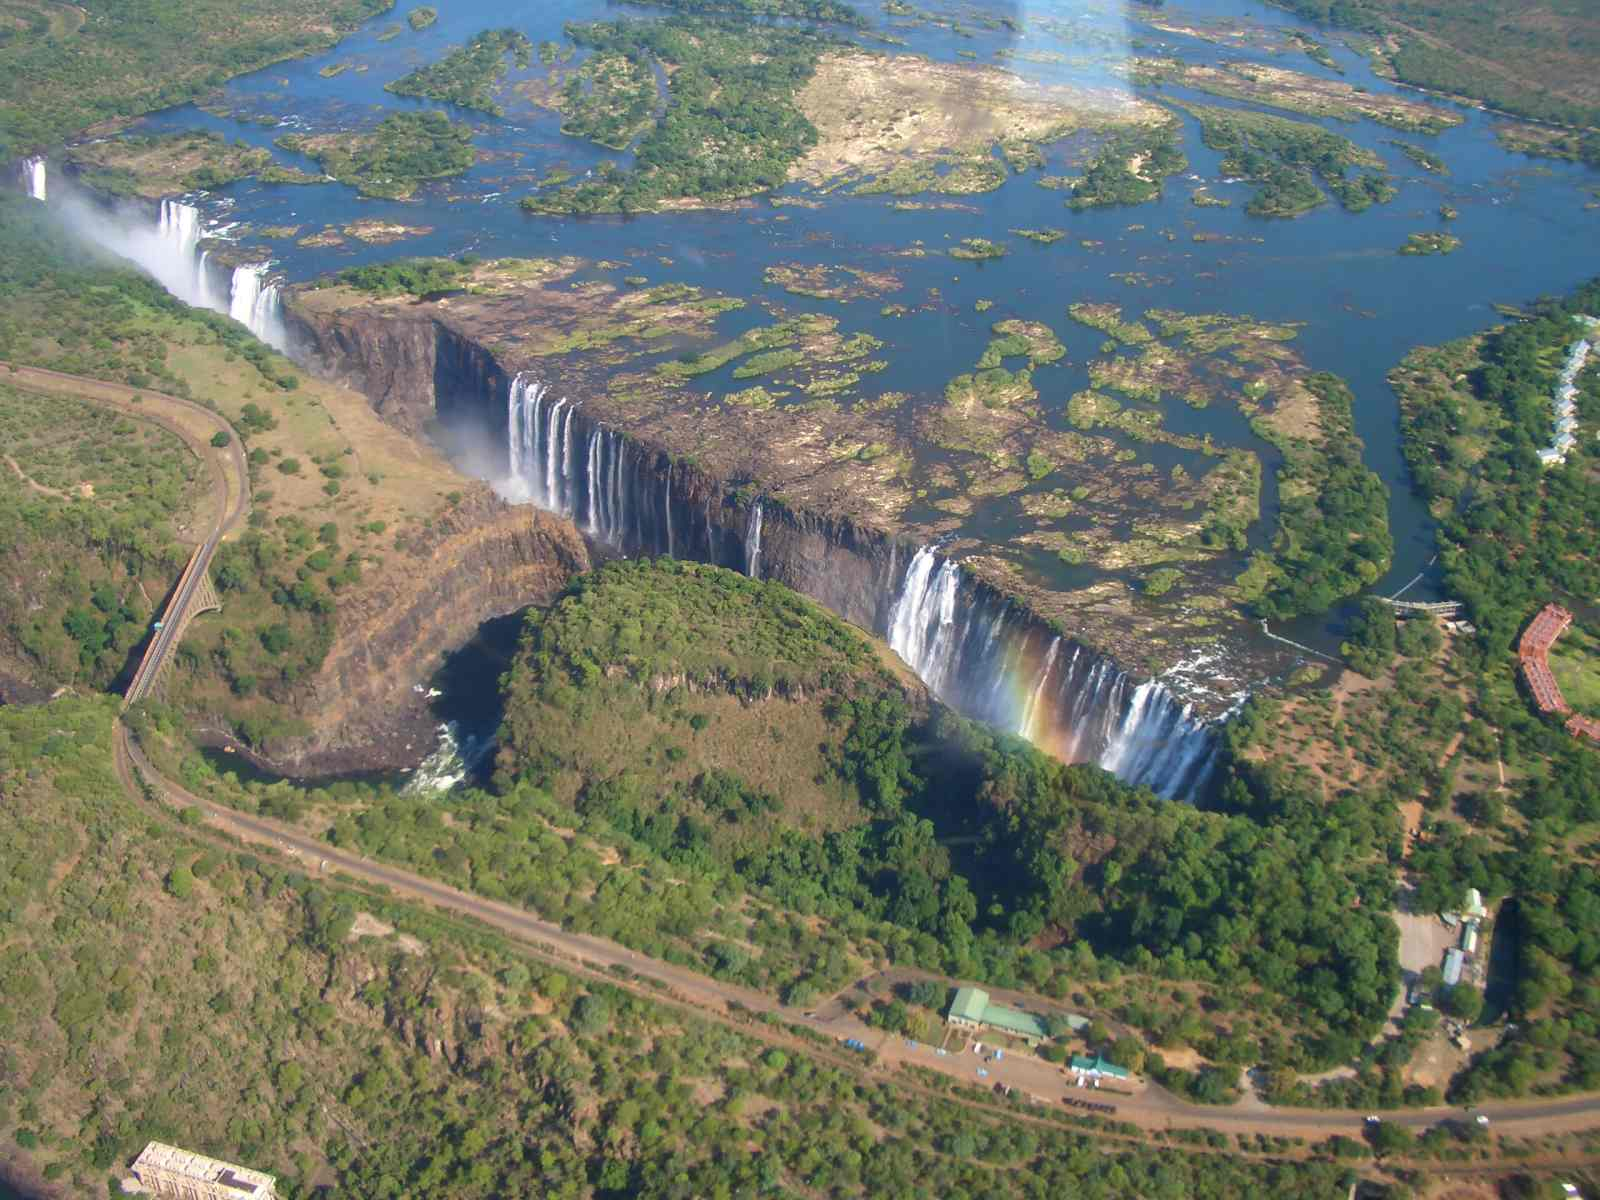 victoria falls helicopter tour with Amazing Victoria Falls Scenery Photos on Amazing Victoria Falls Scenery Photos further Victoria Falls Safari Lodge additionally Showthread moreover Article5574548 together with Livingstone.